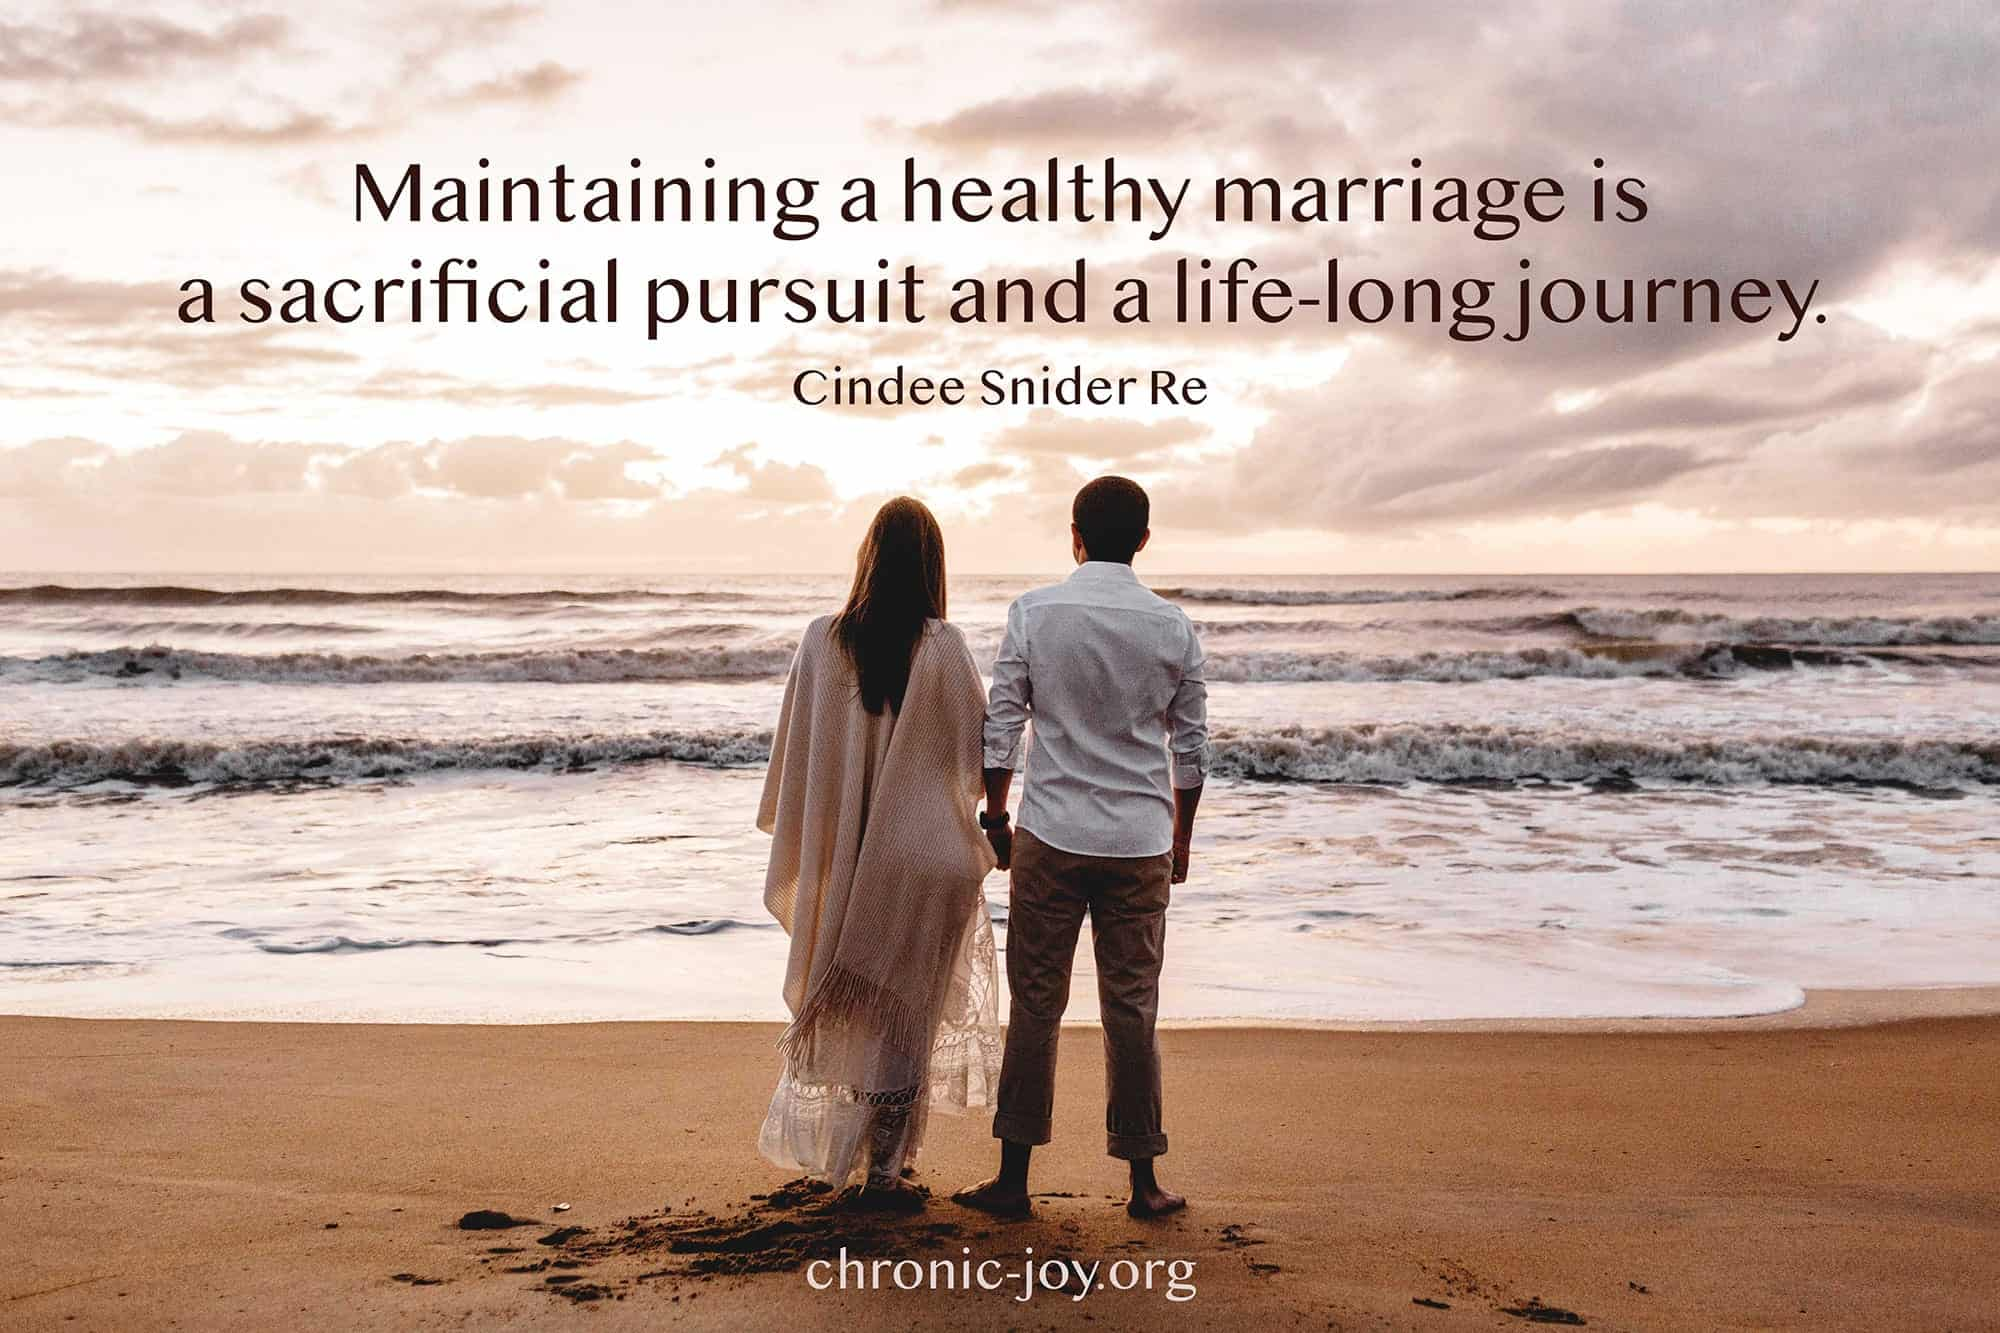 """""""Maintaining a healthy marriage is a sacrificial pursuit and a life-long journey."""" Cindee Snider Re"""